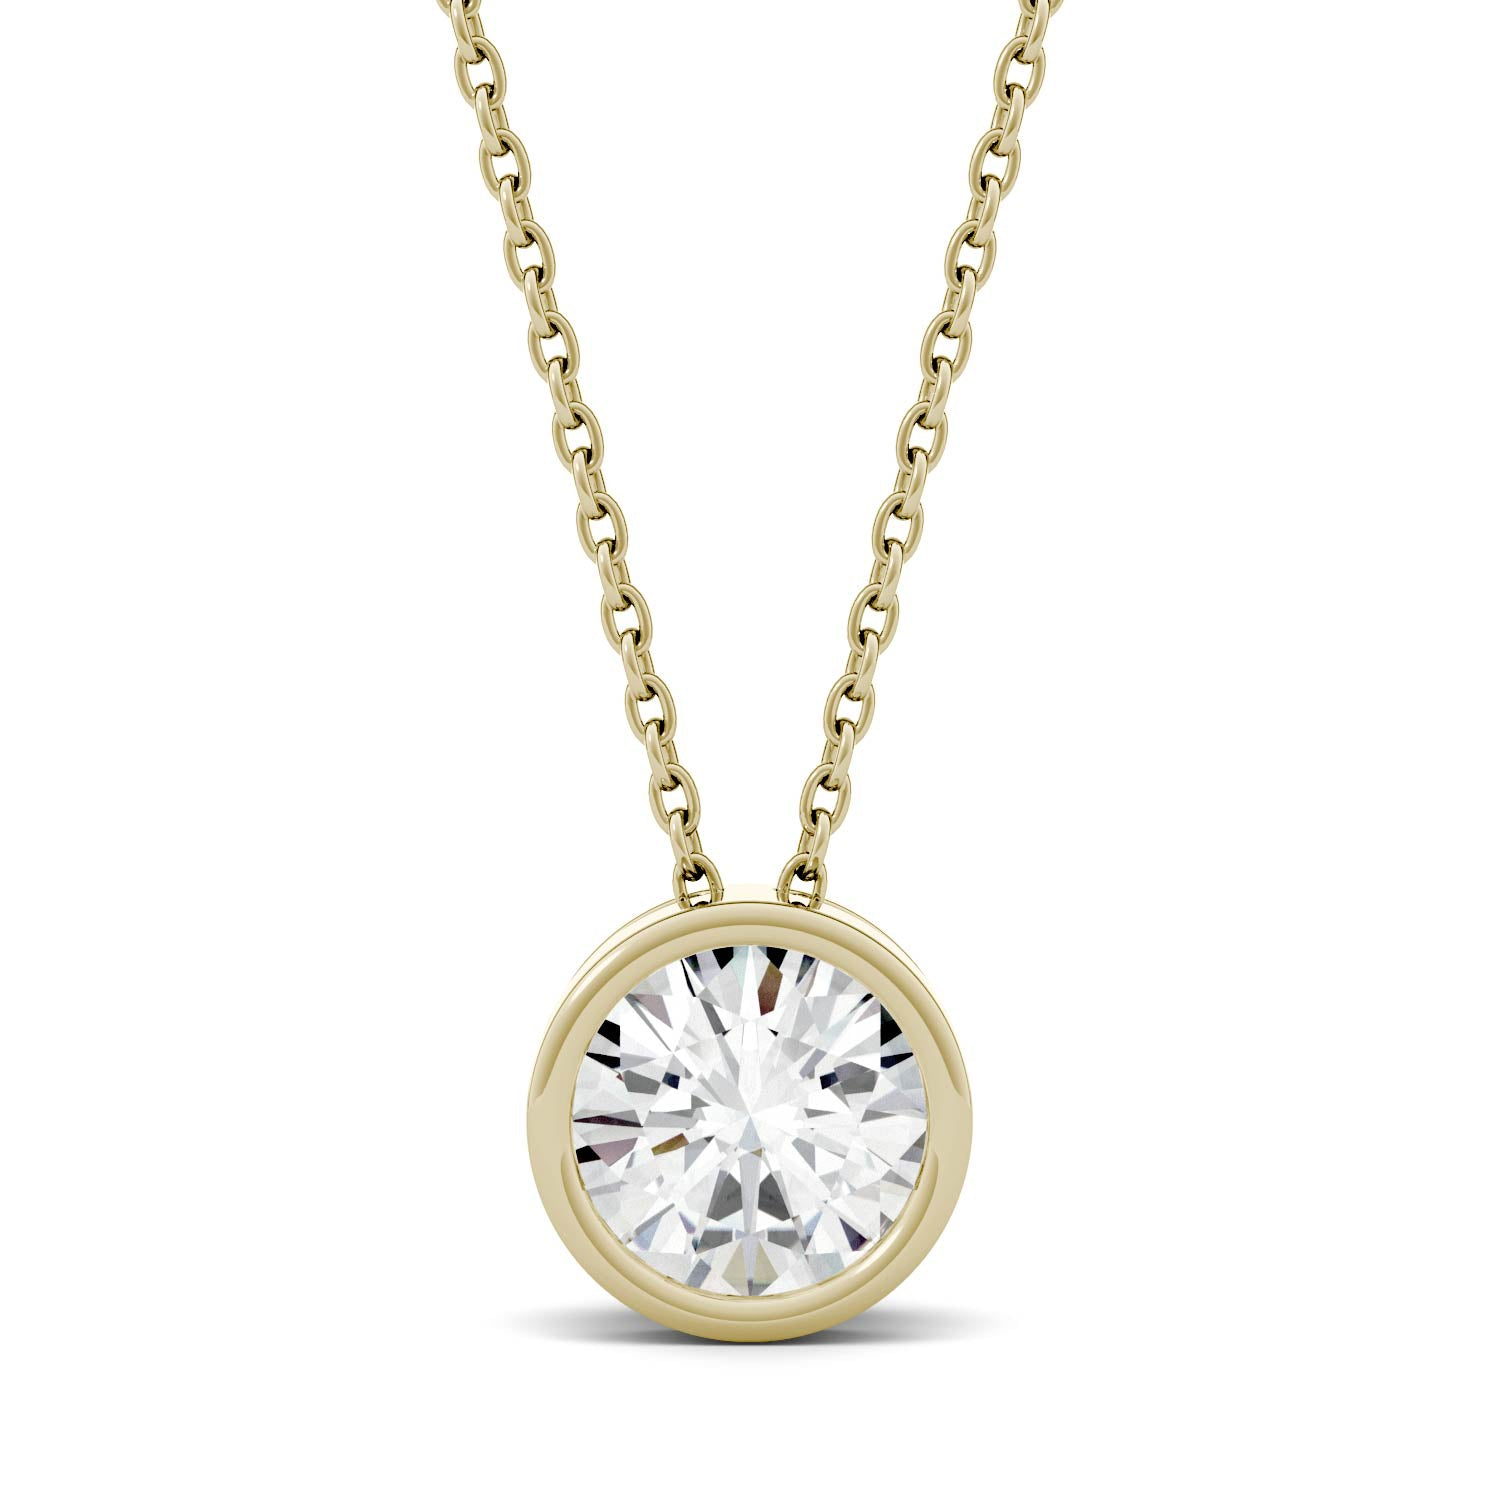 1 Carat TW Charles & Colvard Moissanite Bezel Pendant in Yellow Gold-612720 - Jewelry by Johan